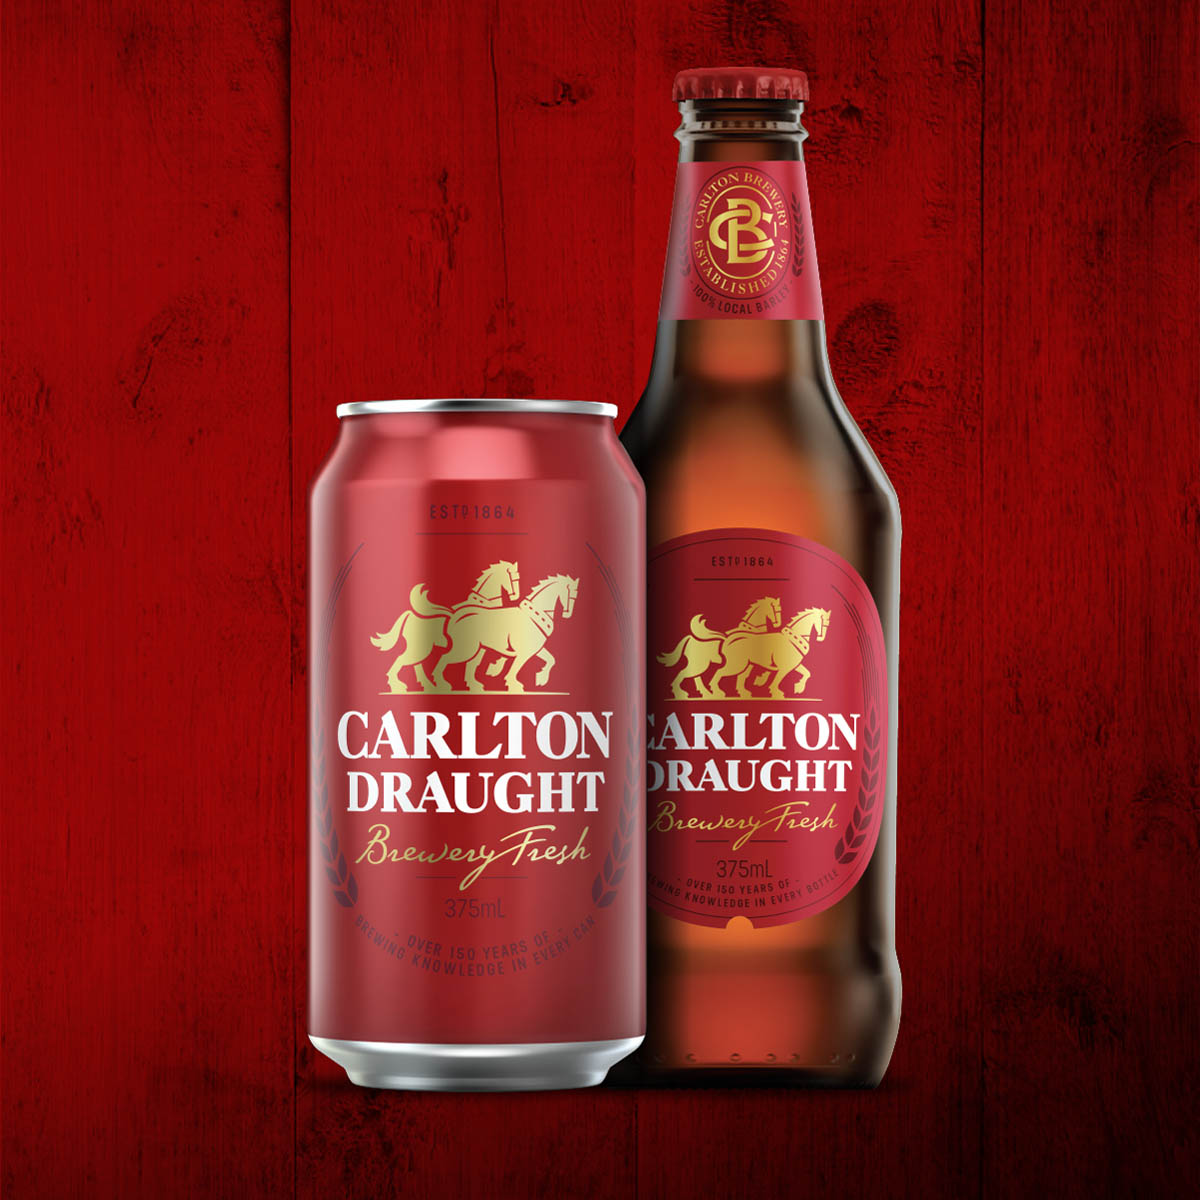 Carlton Draught Bottle & Can